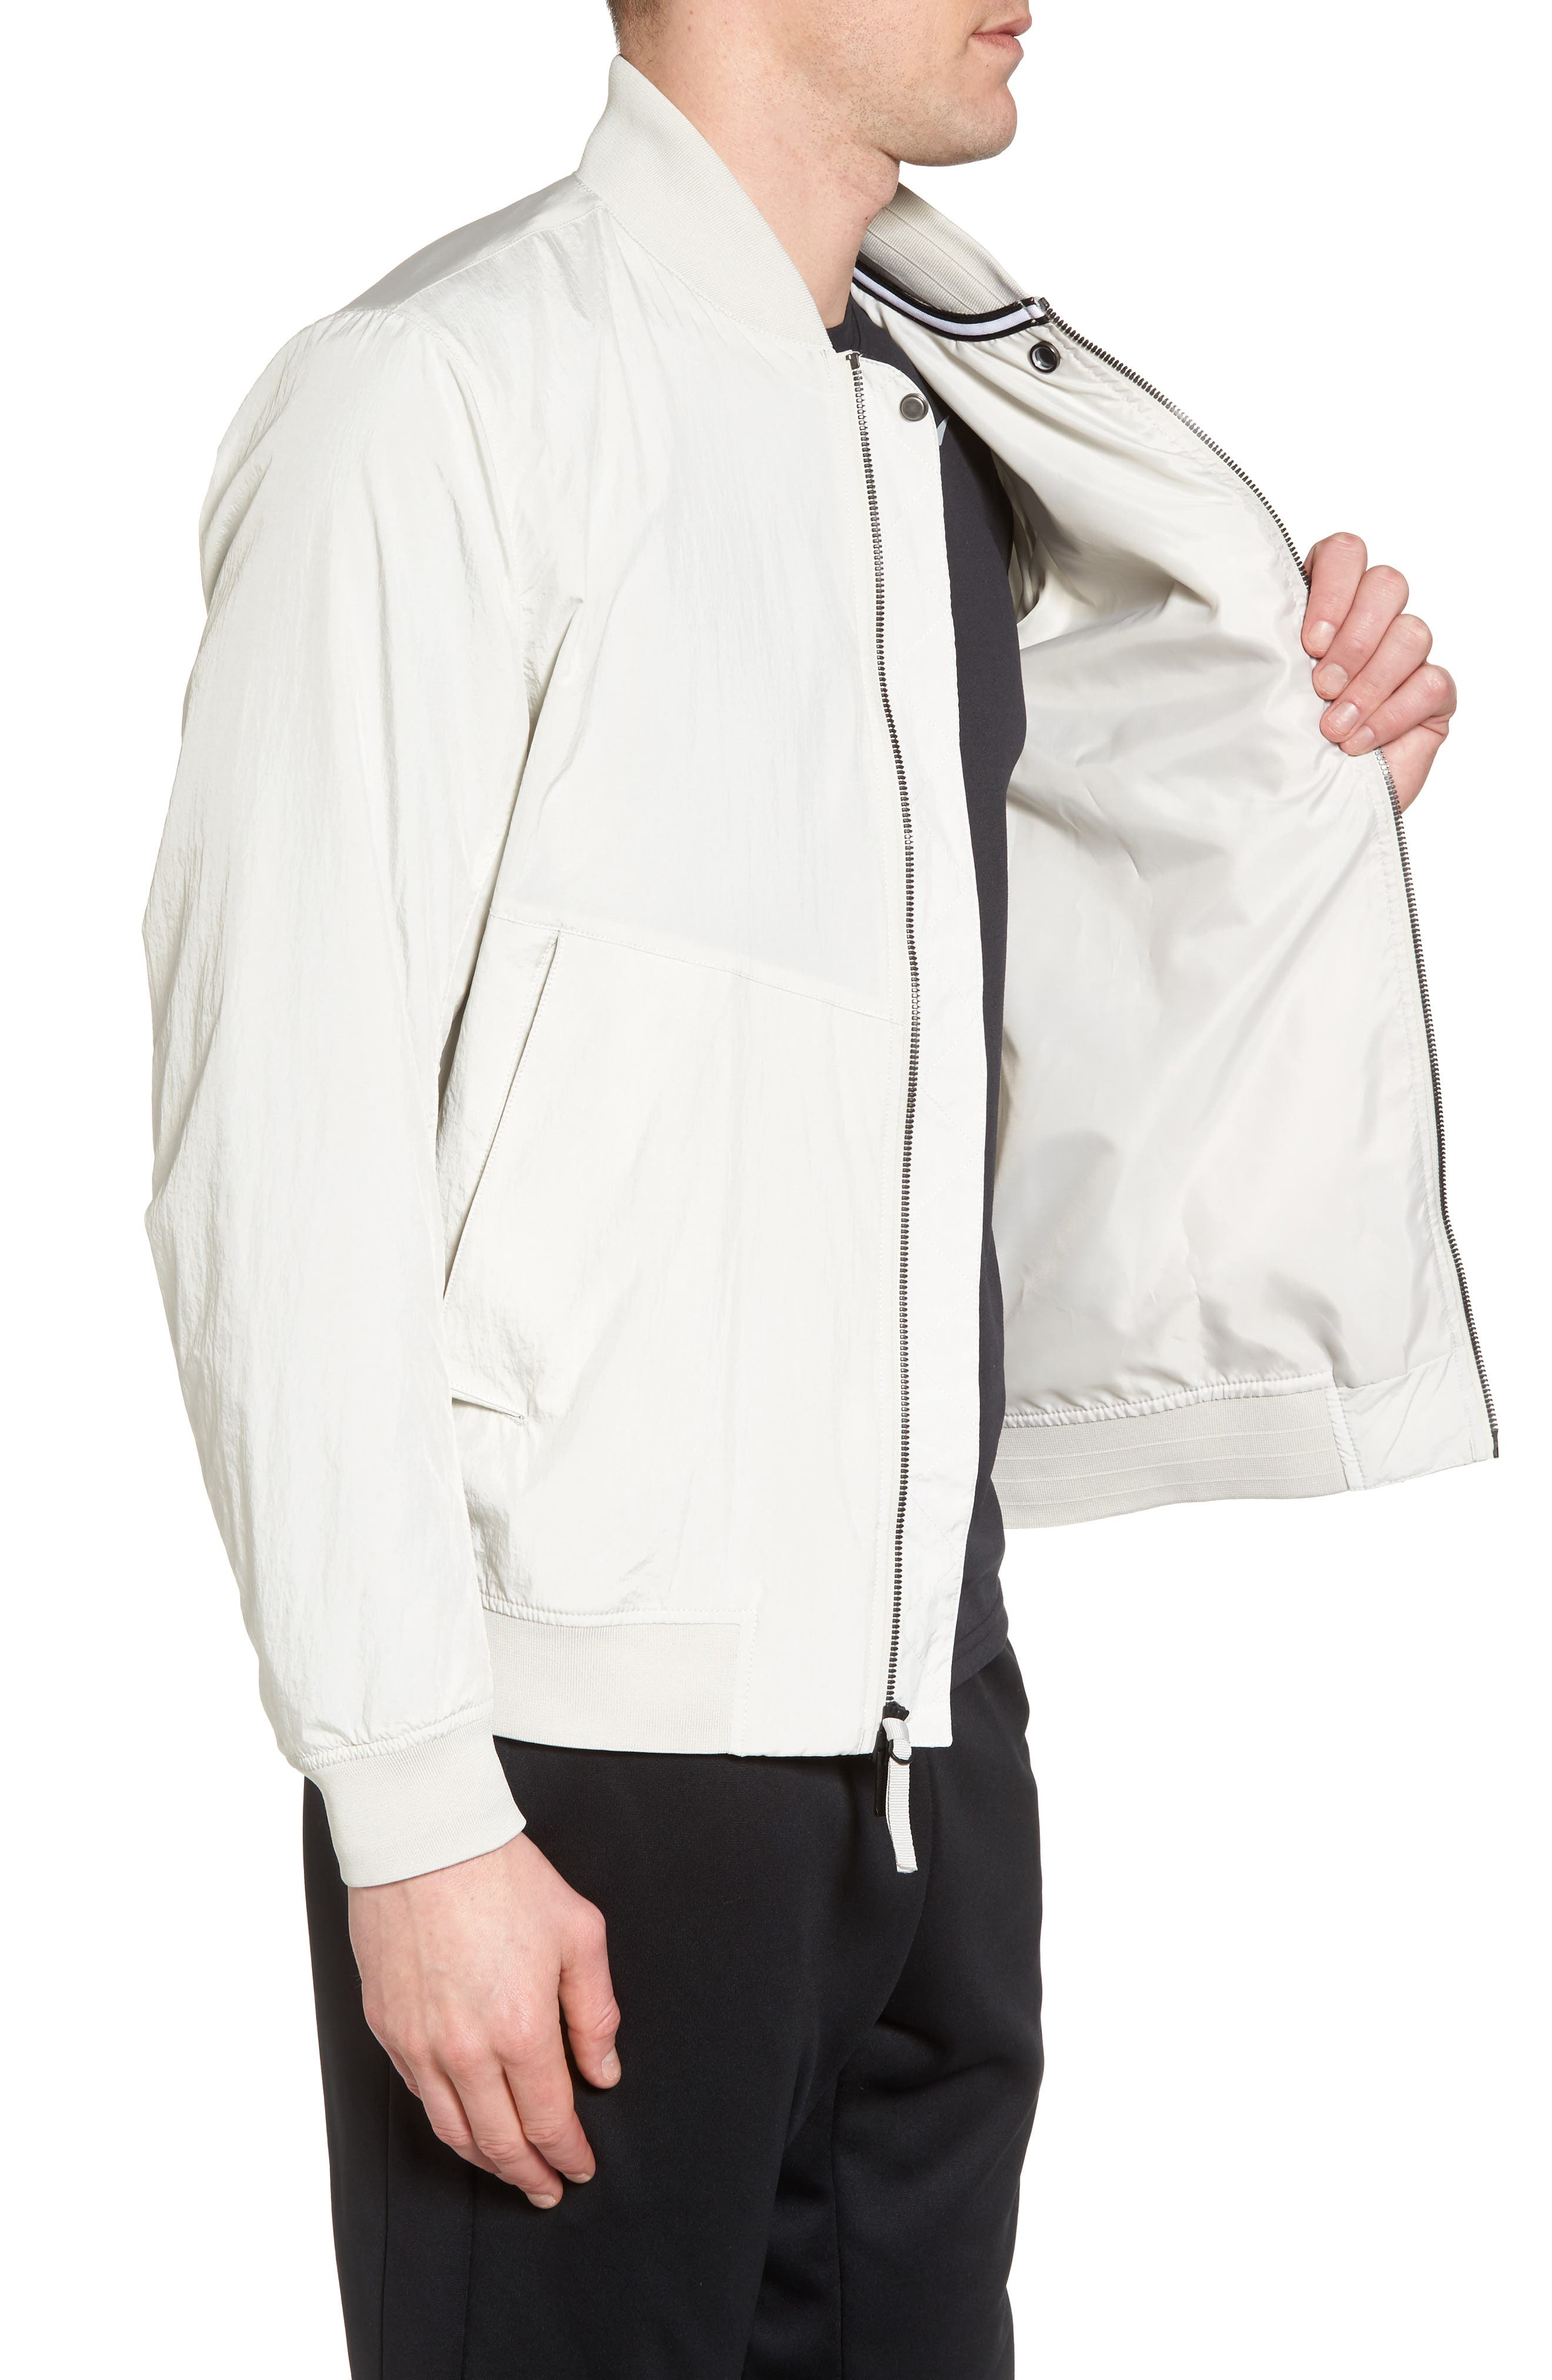 NSW Franchise Varsity Jacket,                             Alternate thumbnail 3, color,                             Light Bone/ Light Bone/ Black